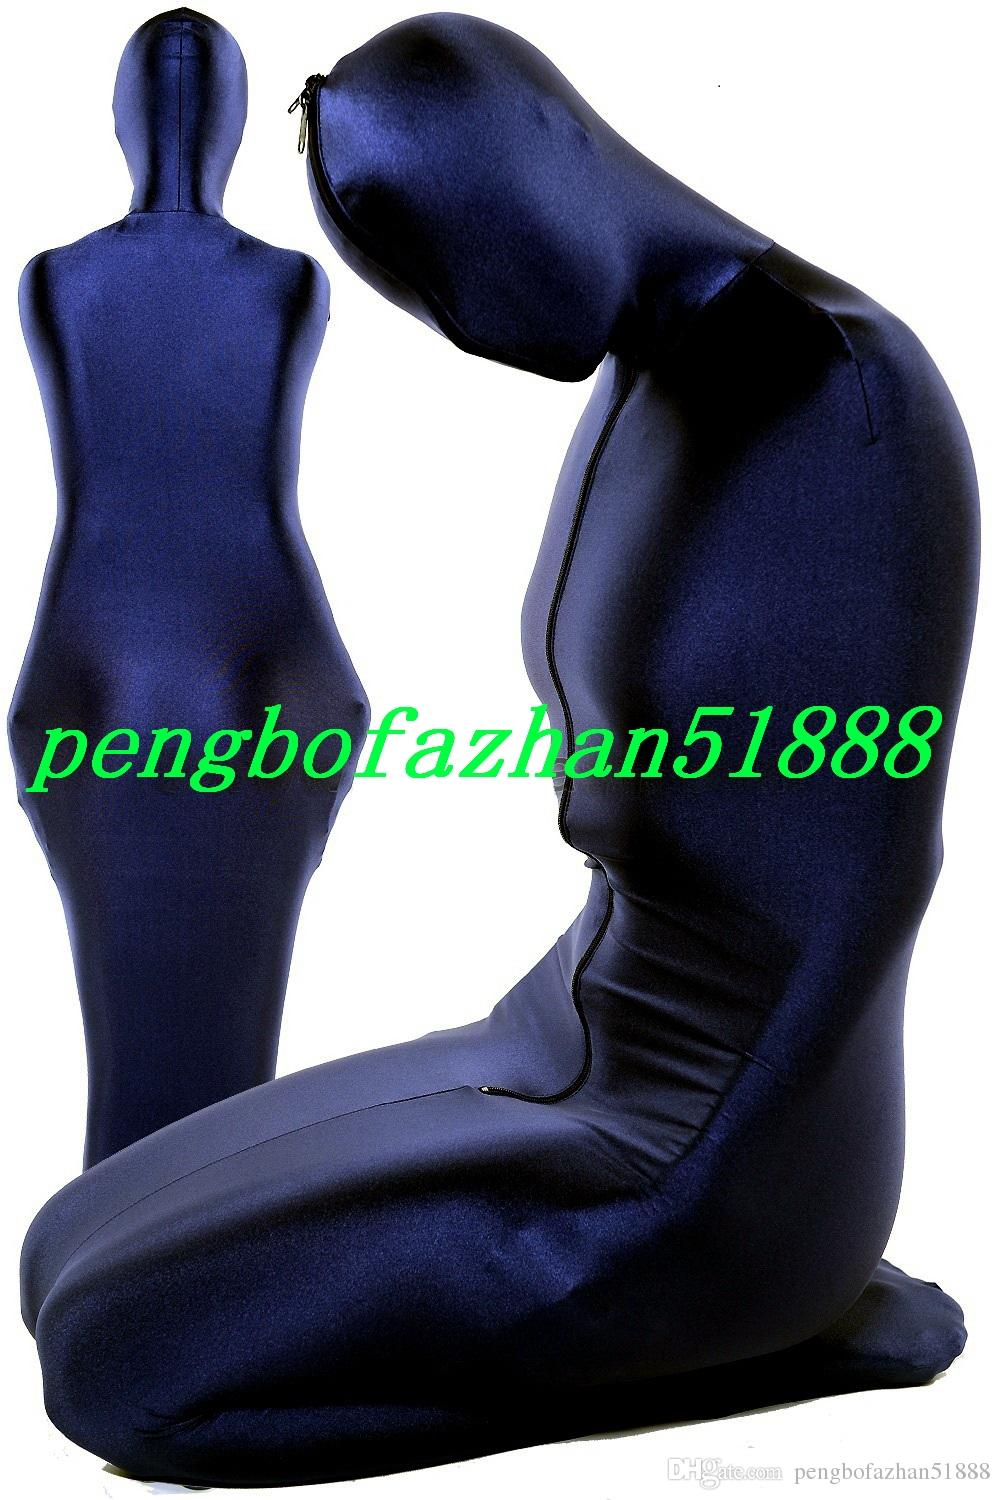 Sexy Mummy Suit Sleeping Bags New Lycra Spandex Mummy Suit Costumes Sleeping Bags Unisex Sexy Mummy Body Suit Costumes Outfit P159